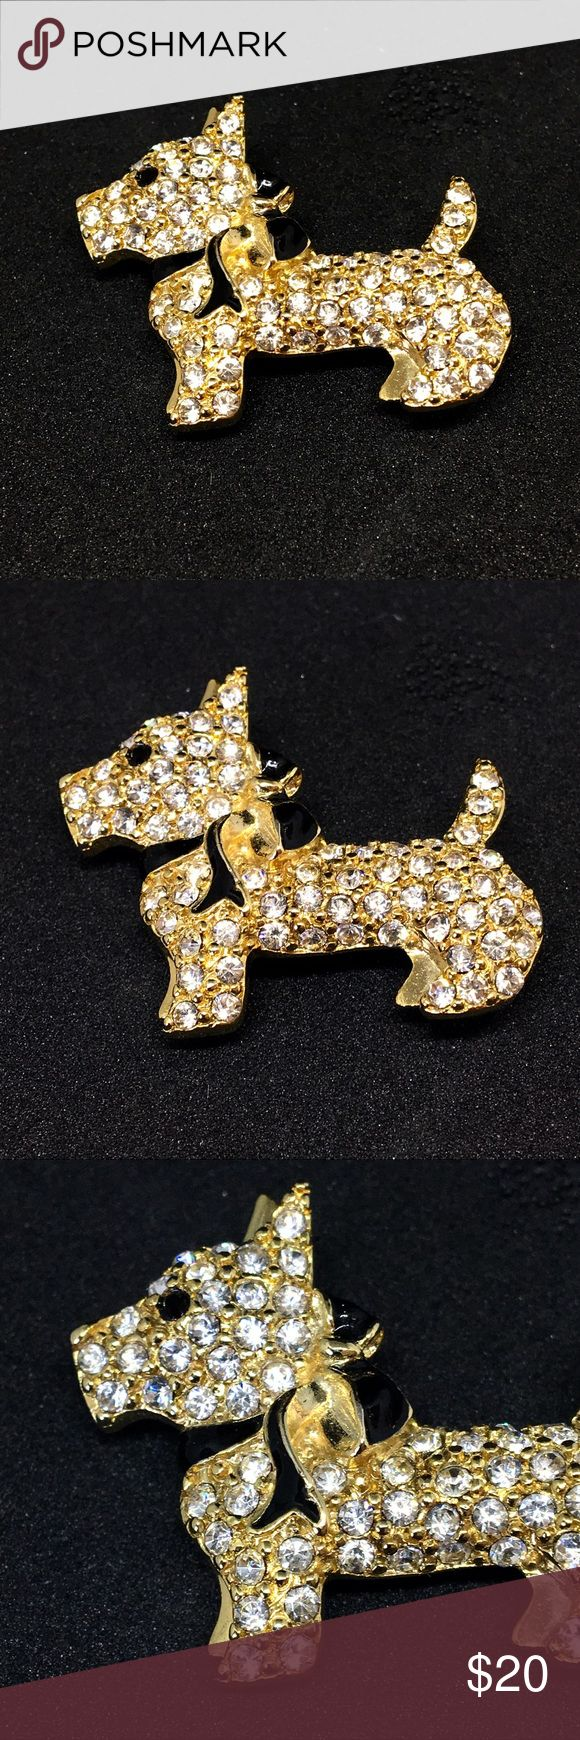 "Monet Scottie Dog Crystal Enamel Pin Vintage Monet scottie dog crystal and enamel pin brooch. Gold tone metal scottie dog with pavé crystal rhinestones. Has a black enamel scarf and black crystal eye. Signed Monet. Pin works perfectly and is in immaculate condition. Measures 1 1/2"" by 1 1/4"" at tallest point. Vintage Jewelry Brooches"